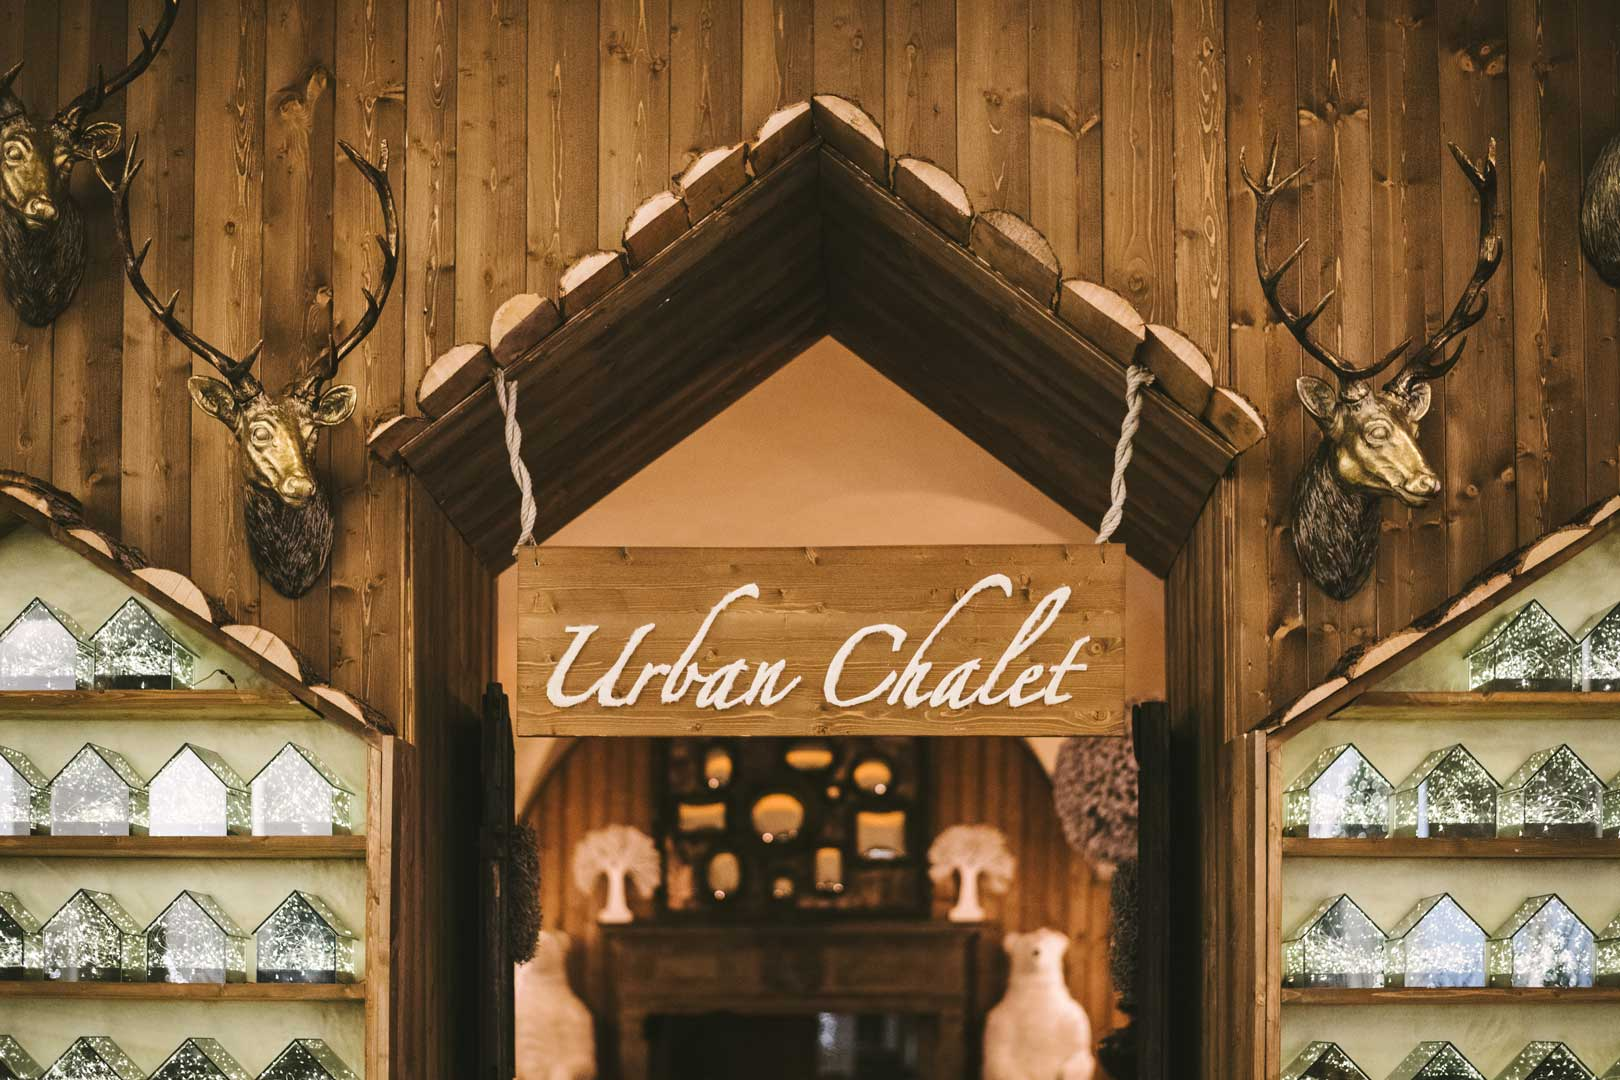 Urban Chalet Four Seasons Hotel Milano 2018